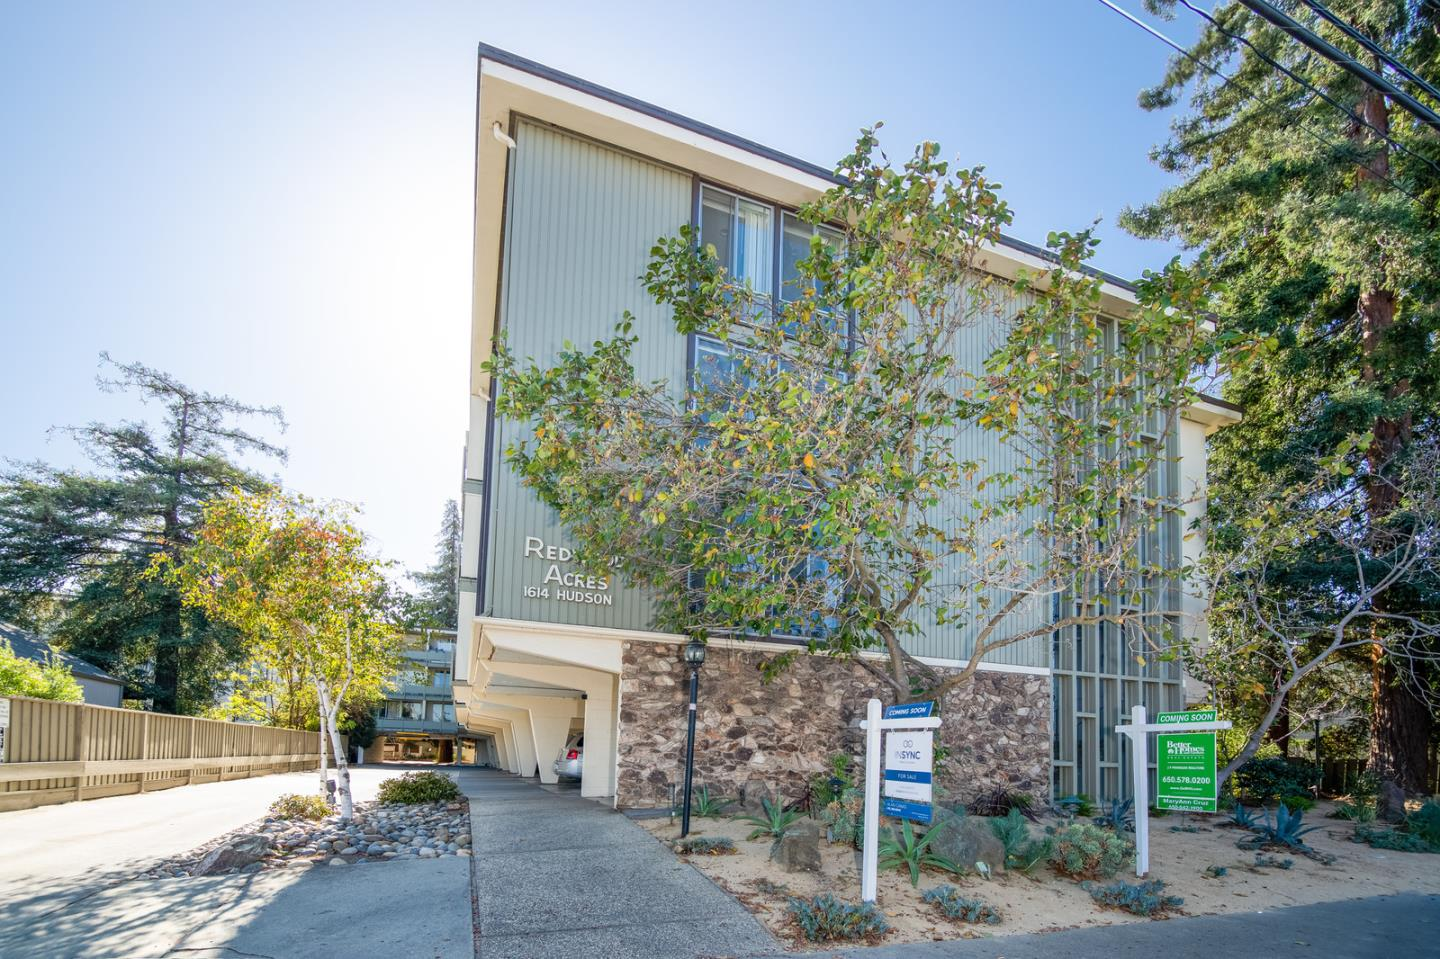 1614 Hudson ST 310, Redwood City, California